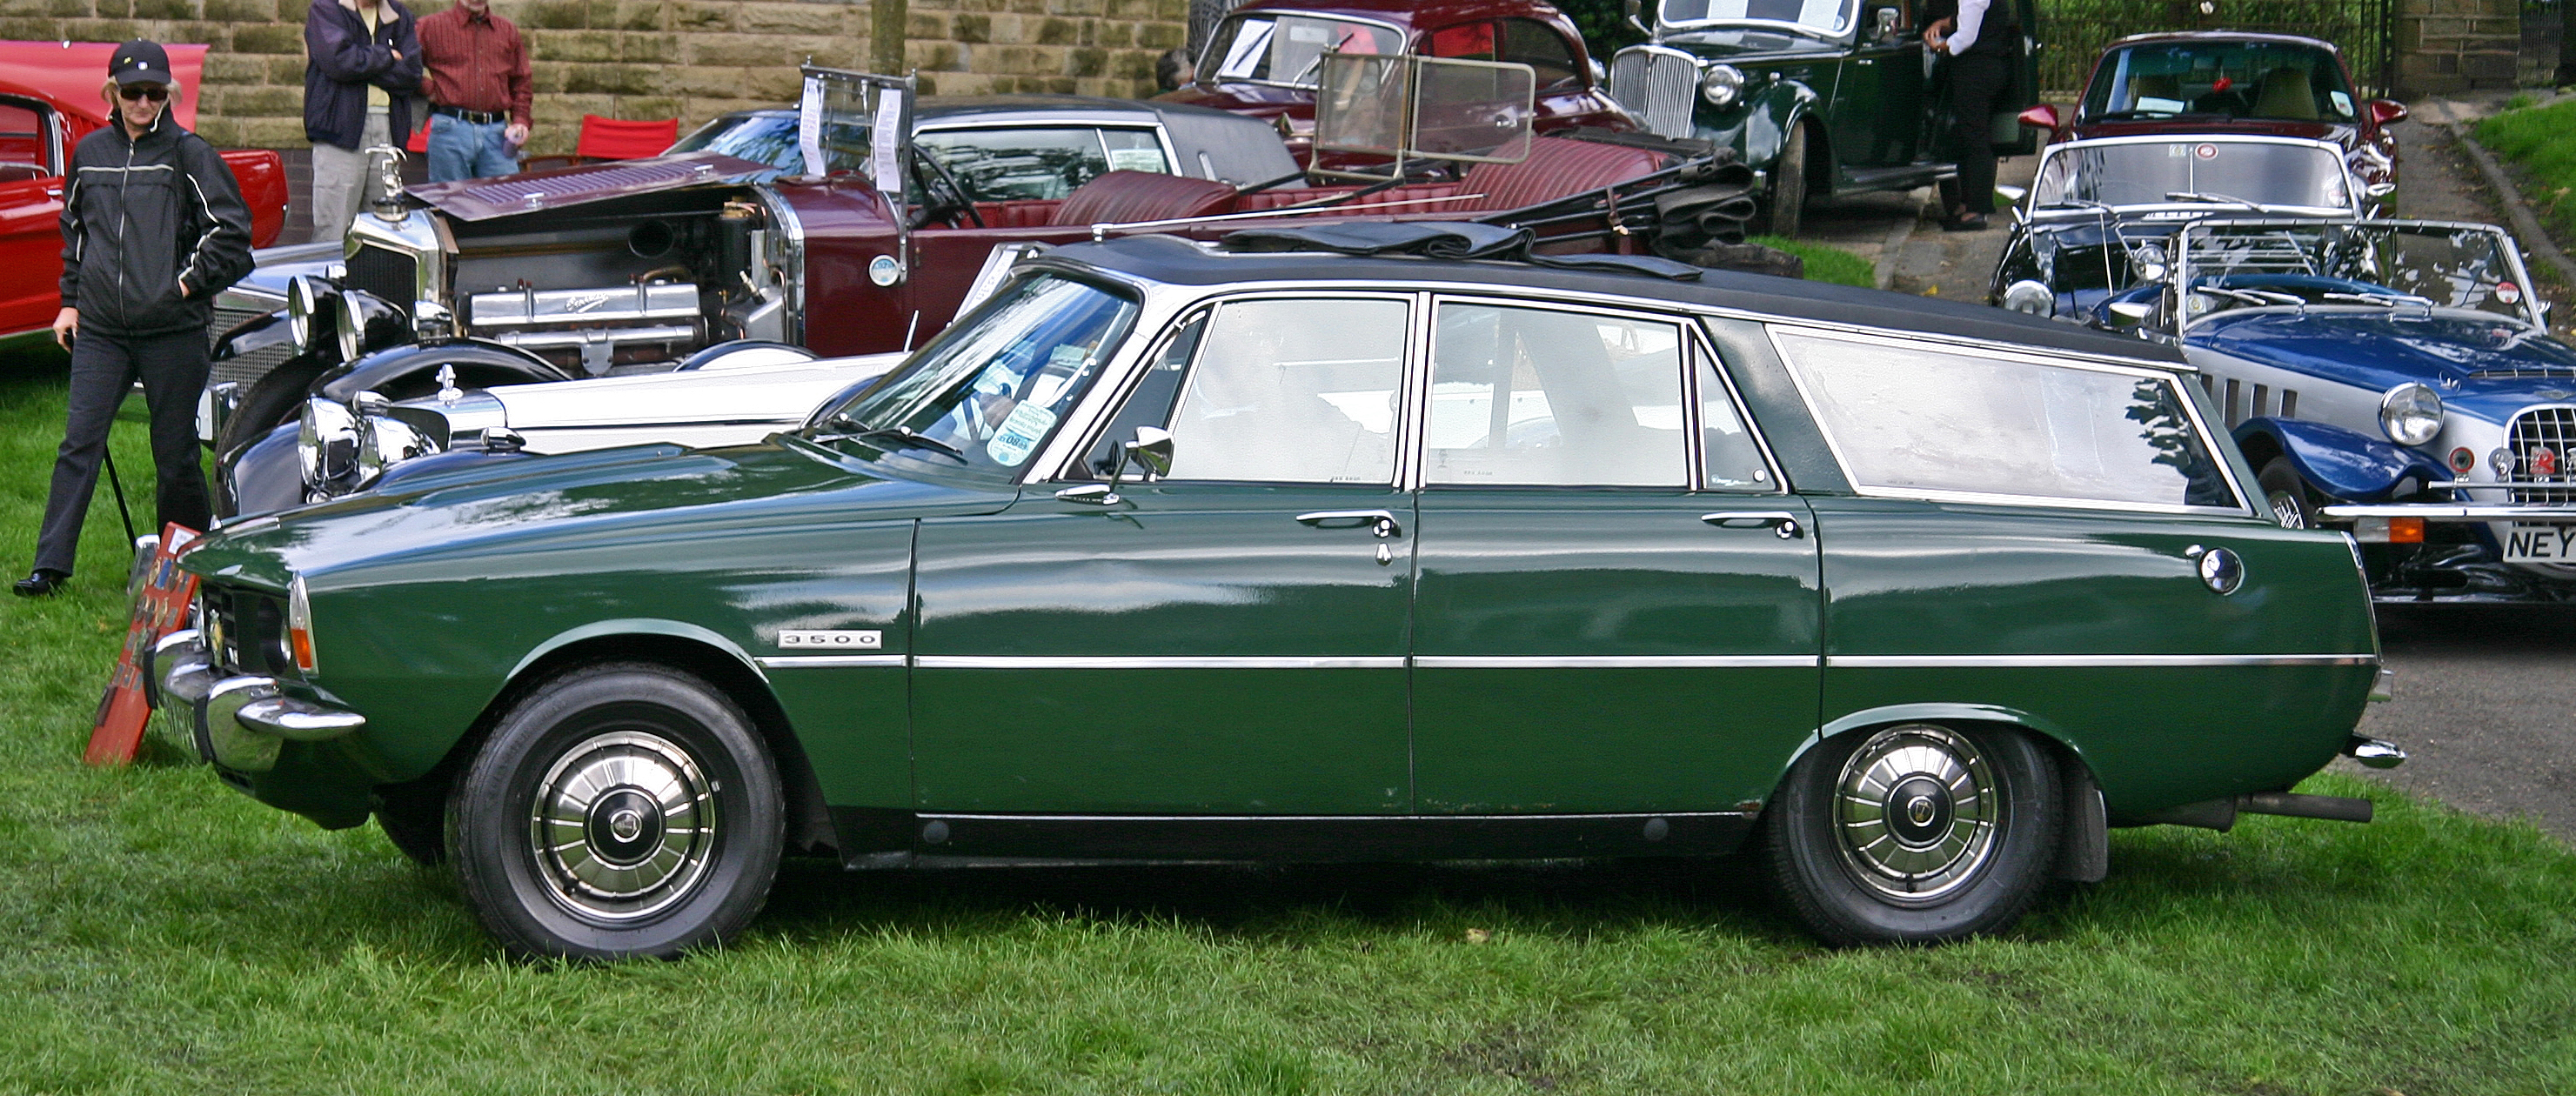 Estate Cars For Sale Wales